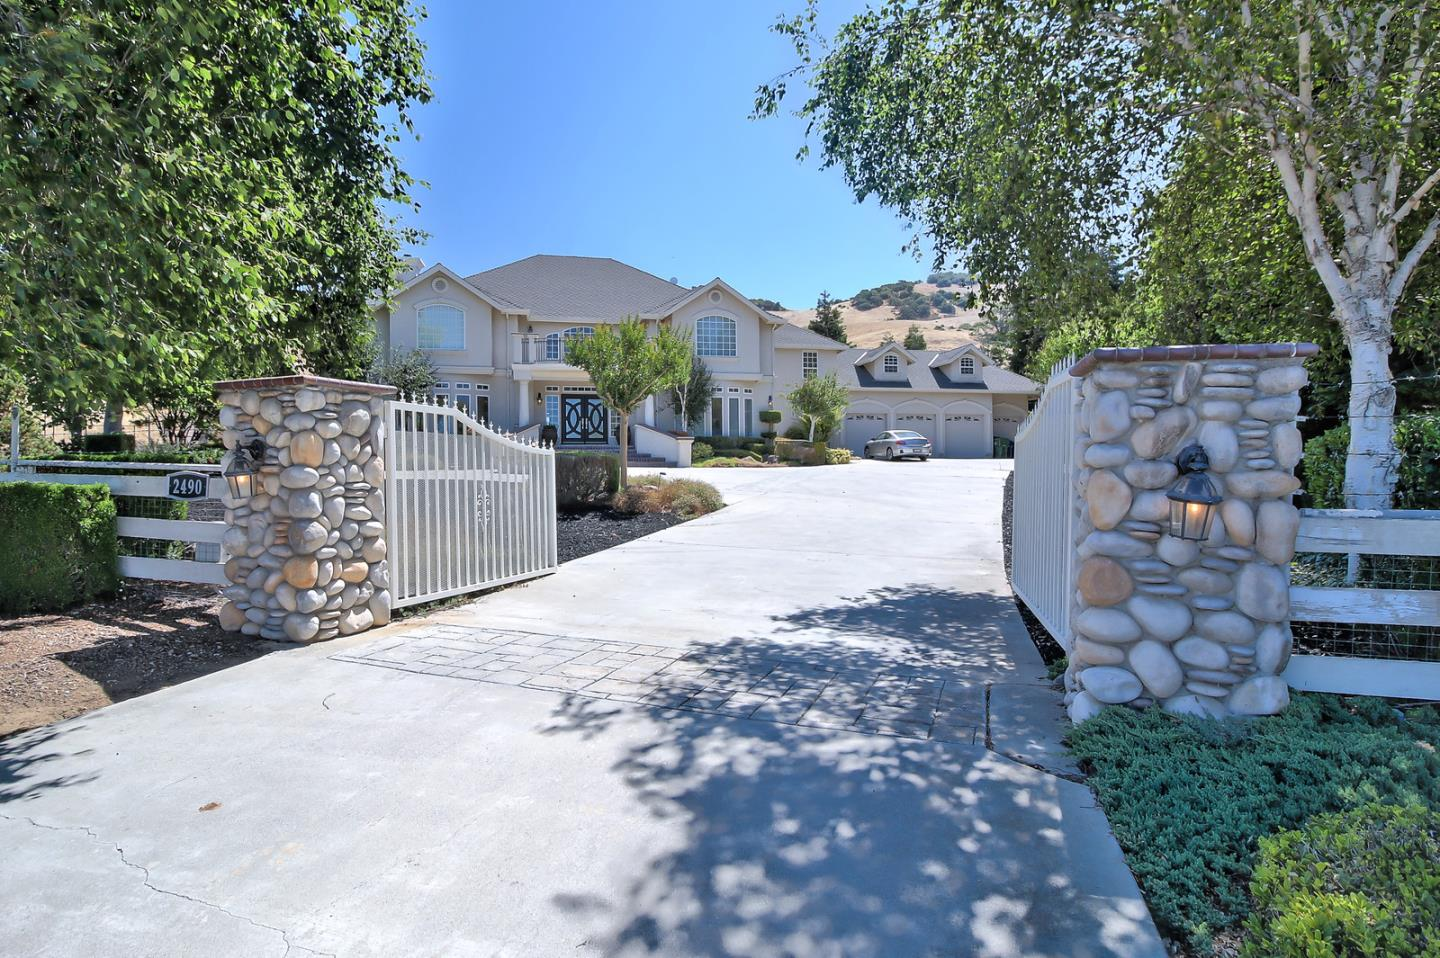 Single Family Home for Sale at 2490 Howell Lane Gilroy, California 95020 United States